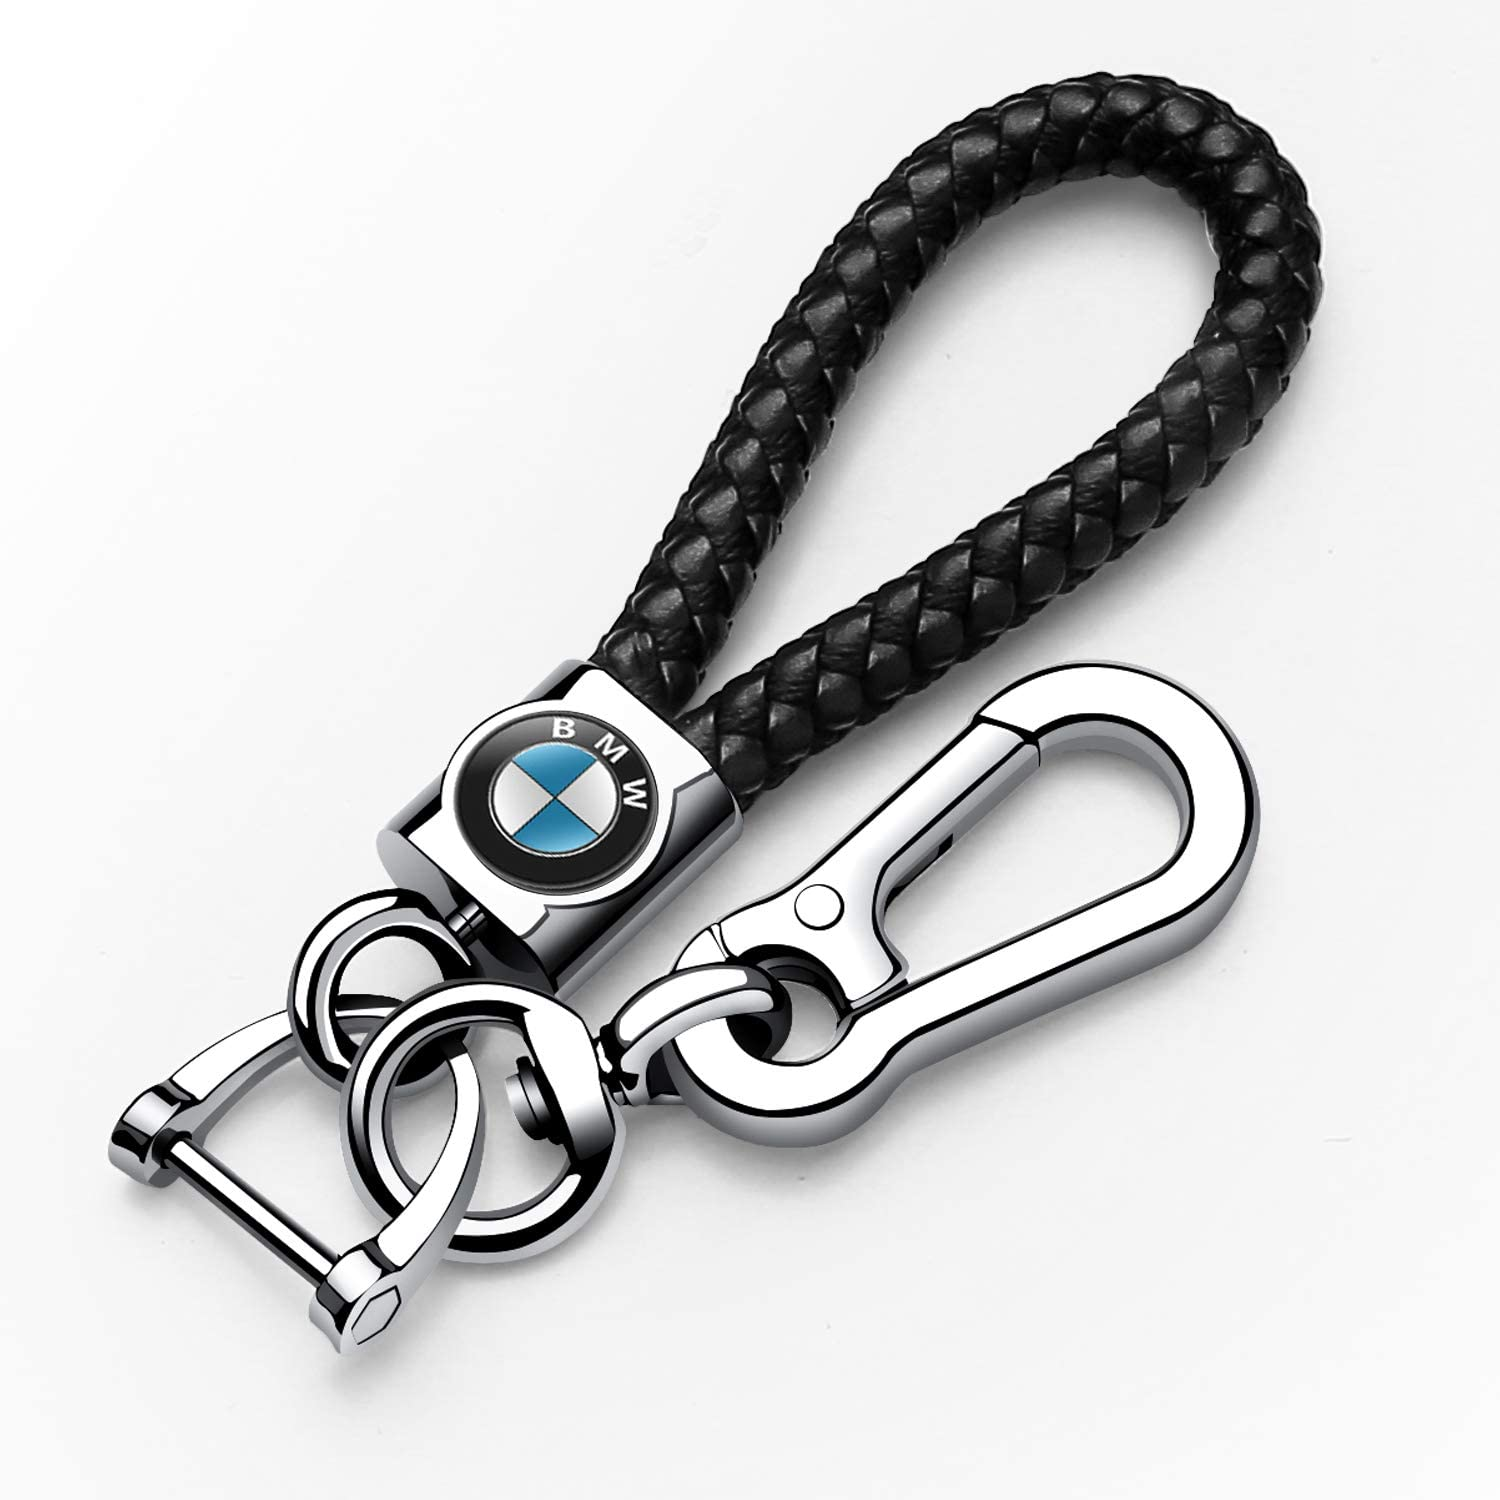 for men and women -Black Autophone Leather weave Car Logo Key chain,suit for Lexus keychains,UX200 LS500 LS500H LC500 LC500h ES300h ES350 Accessories Keyring with Logo